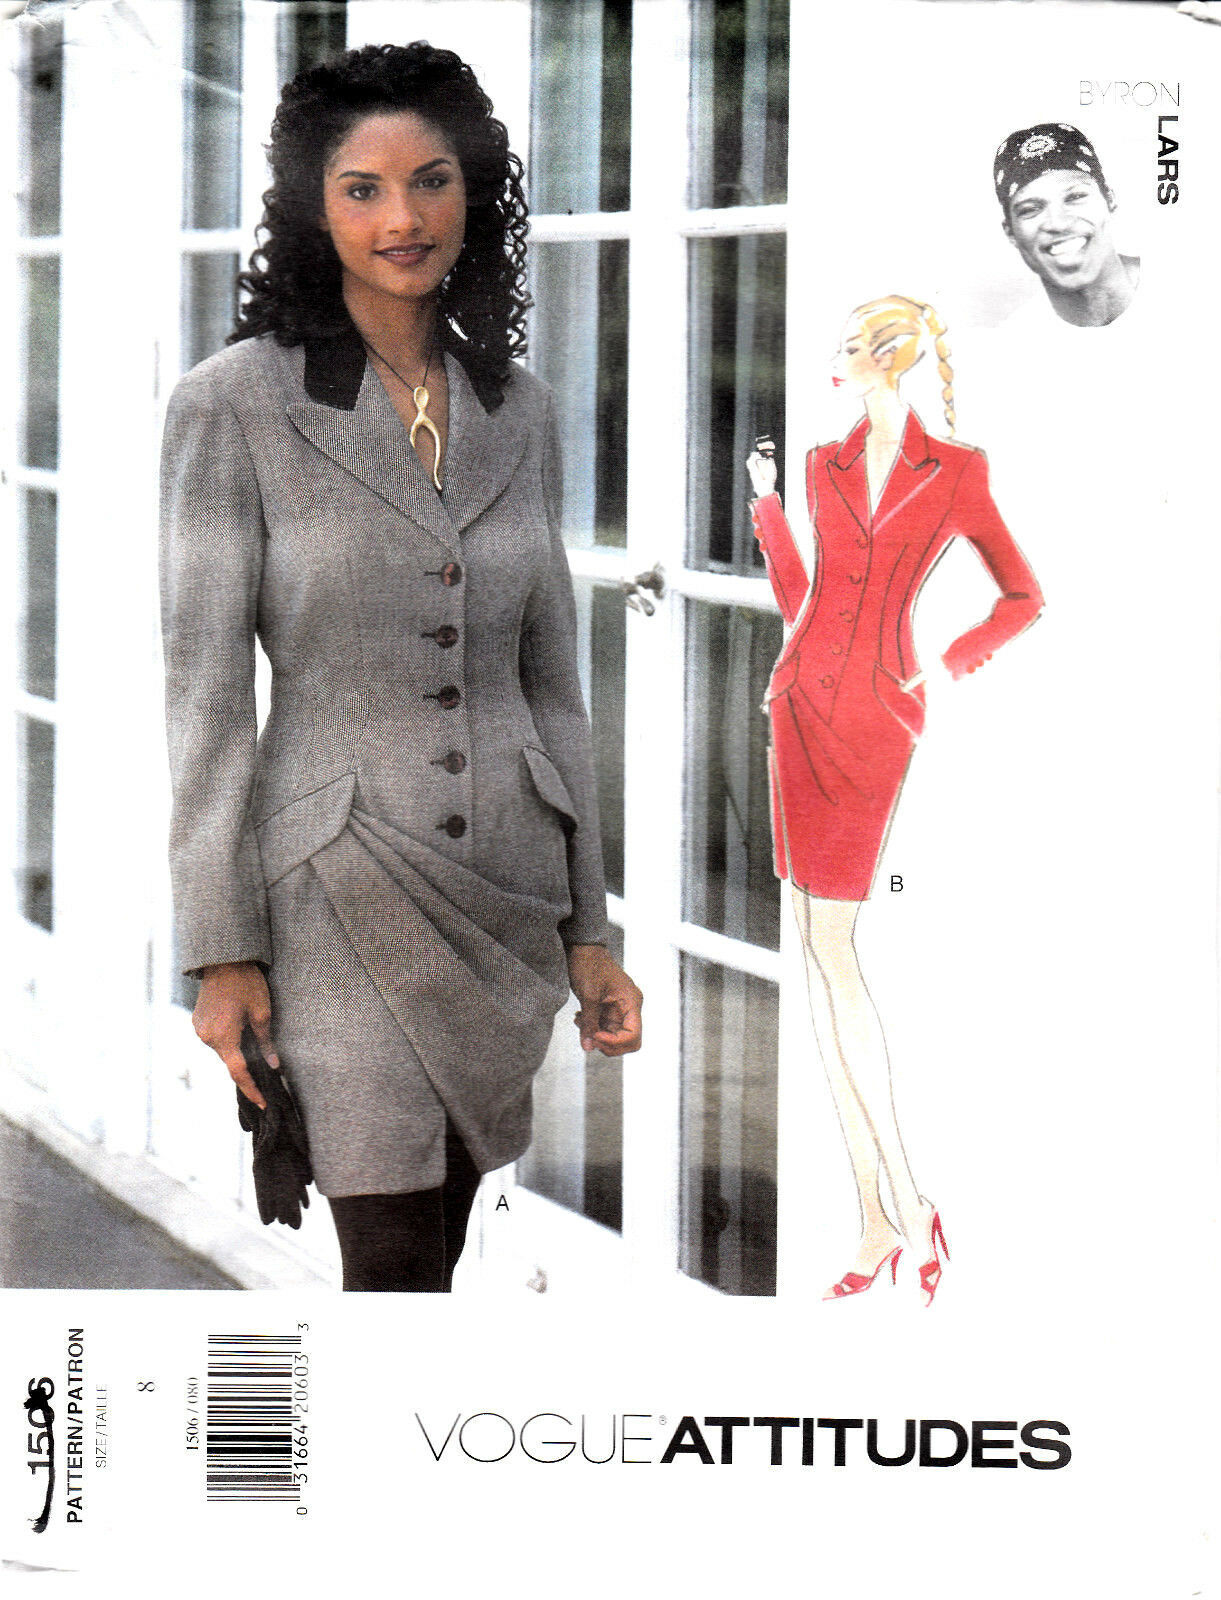 Vogue Byron Lars Dress Attitudes Button Front Above Knee Sew Pattern 1506 Uncut